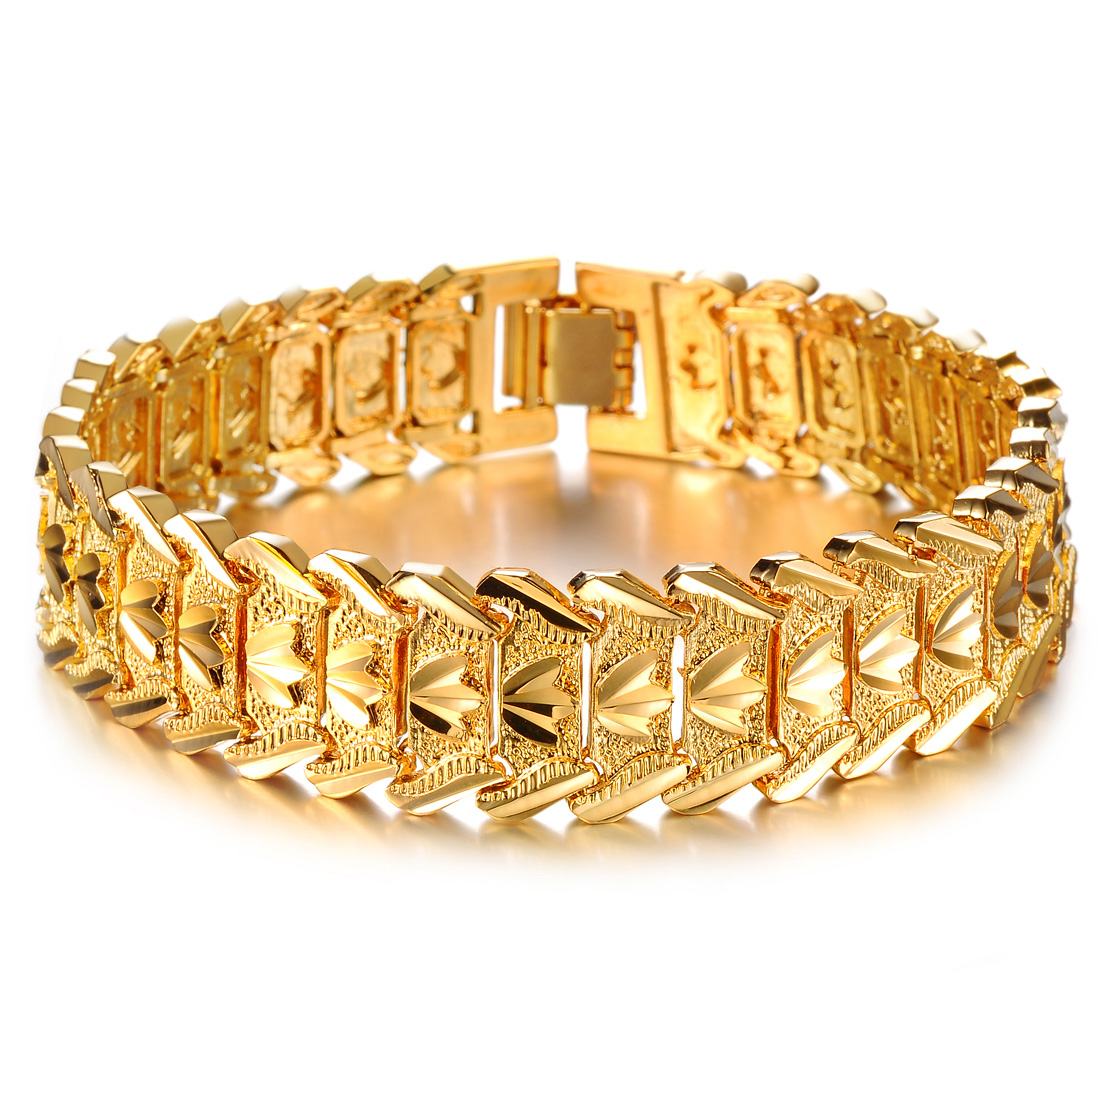 Fashion accessories male gold bracelet personalized gift 16.5mm bracelet n401(China (Mainland))